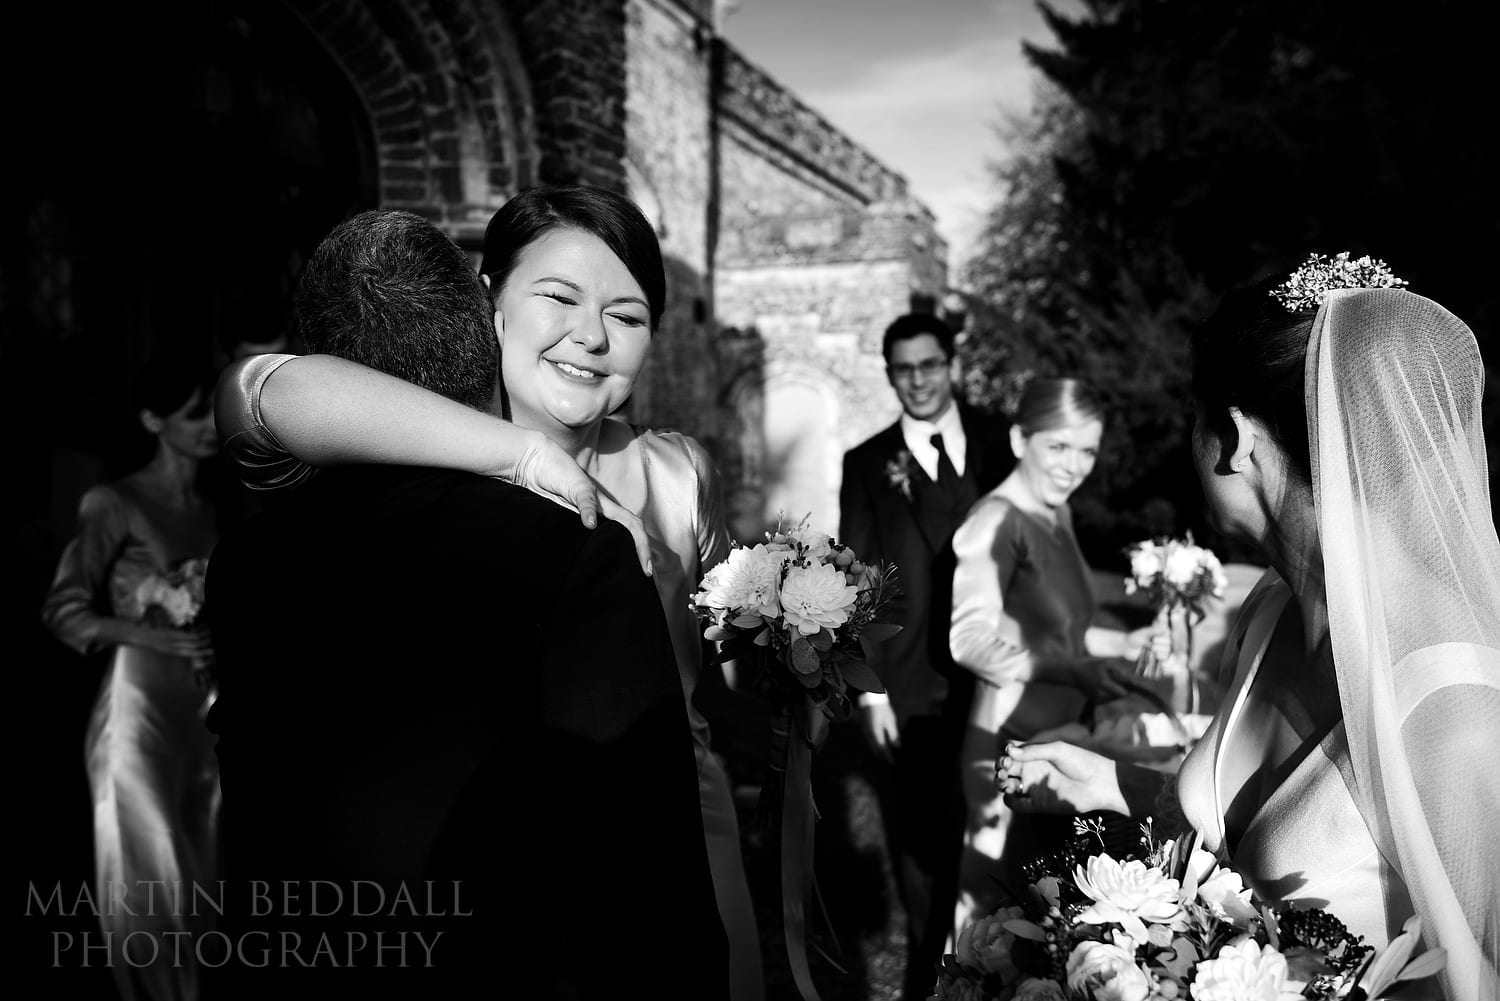 Hugs outside Layer Marney Tower church